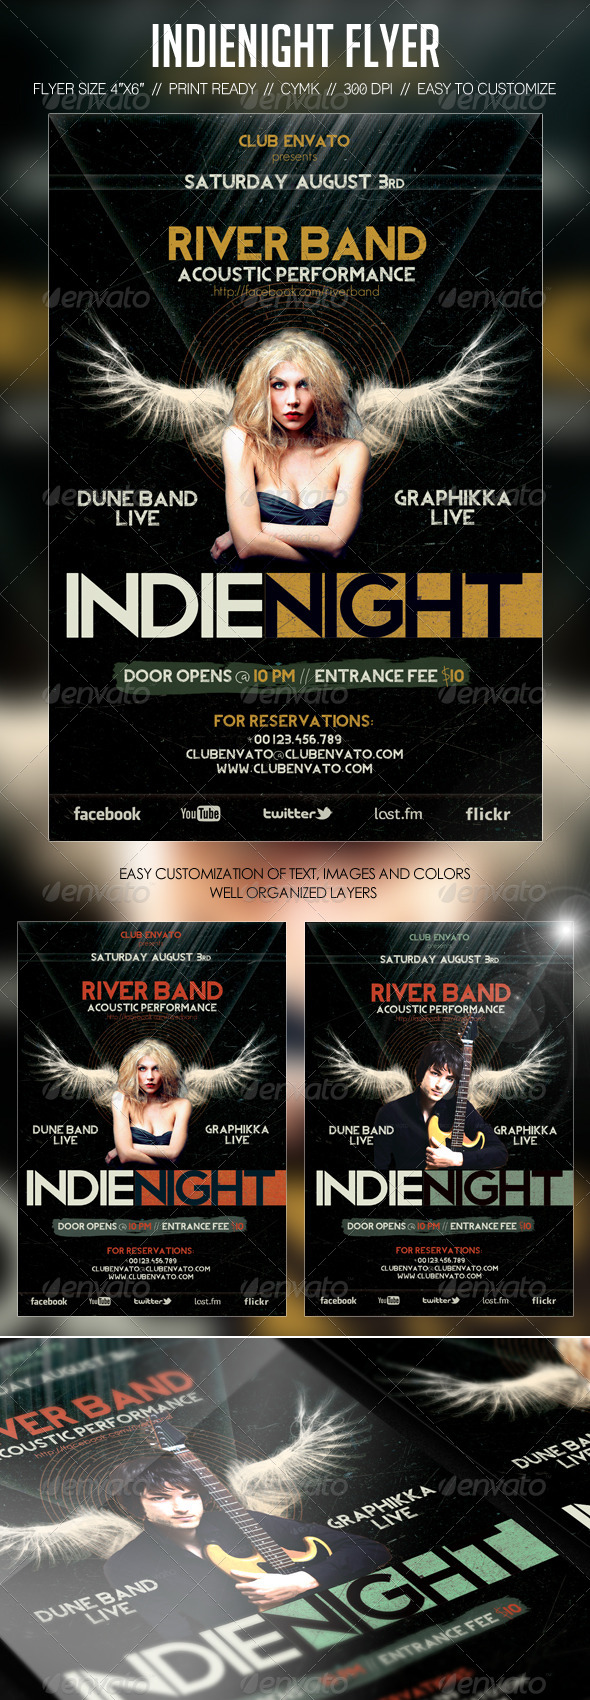 Indienight Concert Flyer - Concerts Events